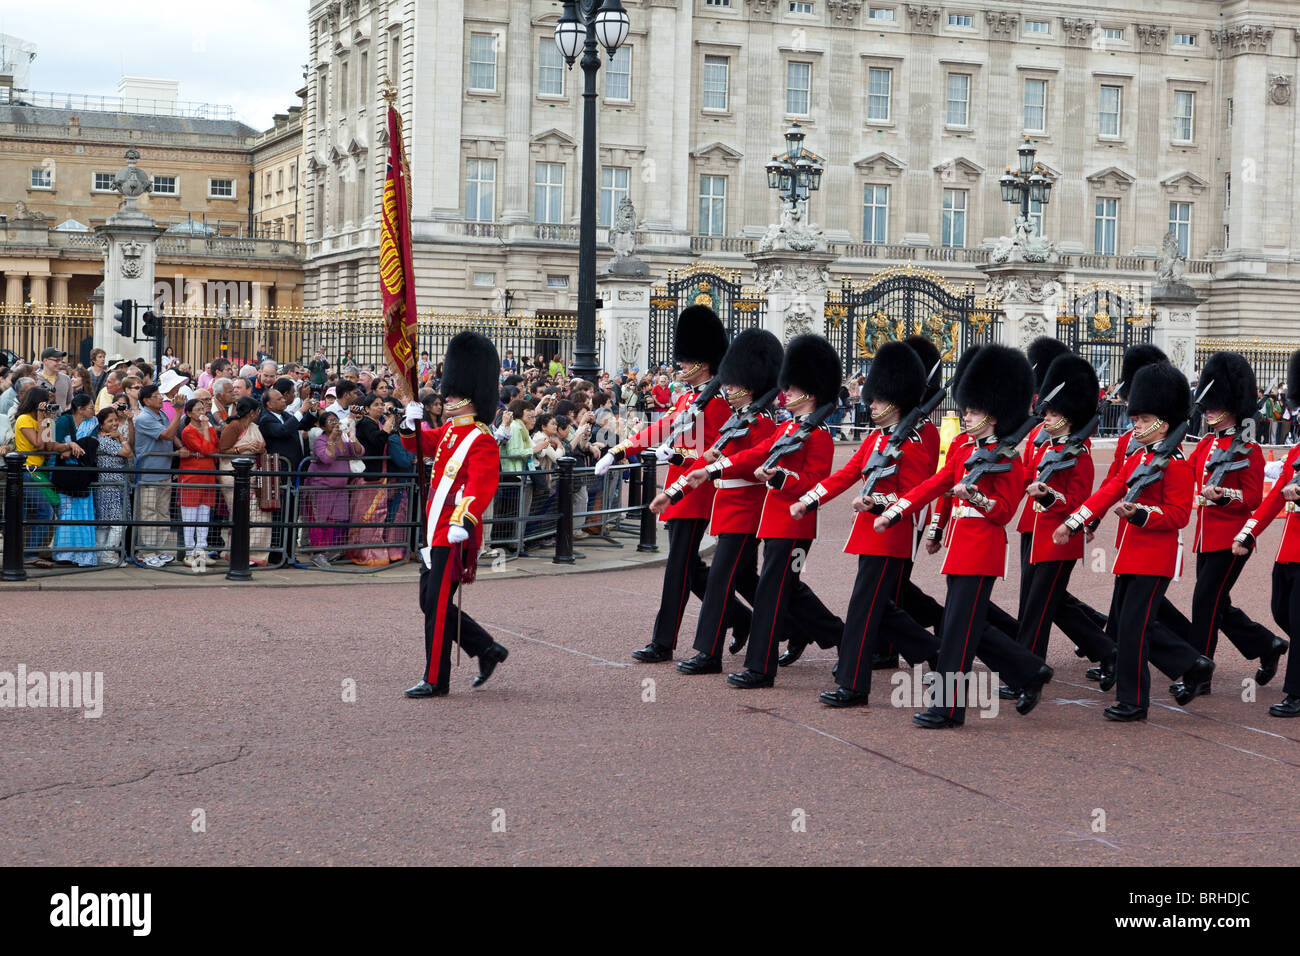 Queen's guardsmen march outside Buckingham Palace during    changing of the guard - Stock Image